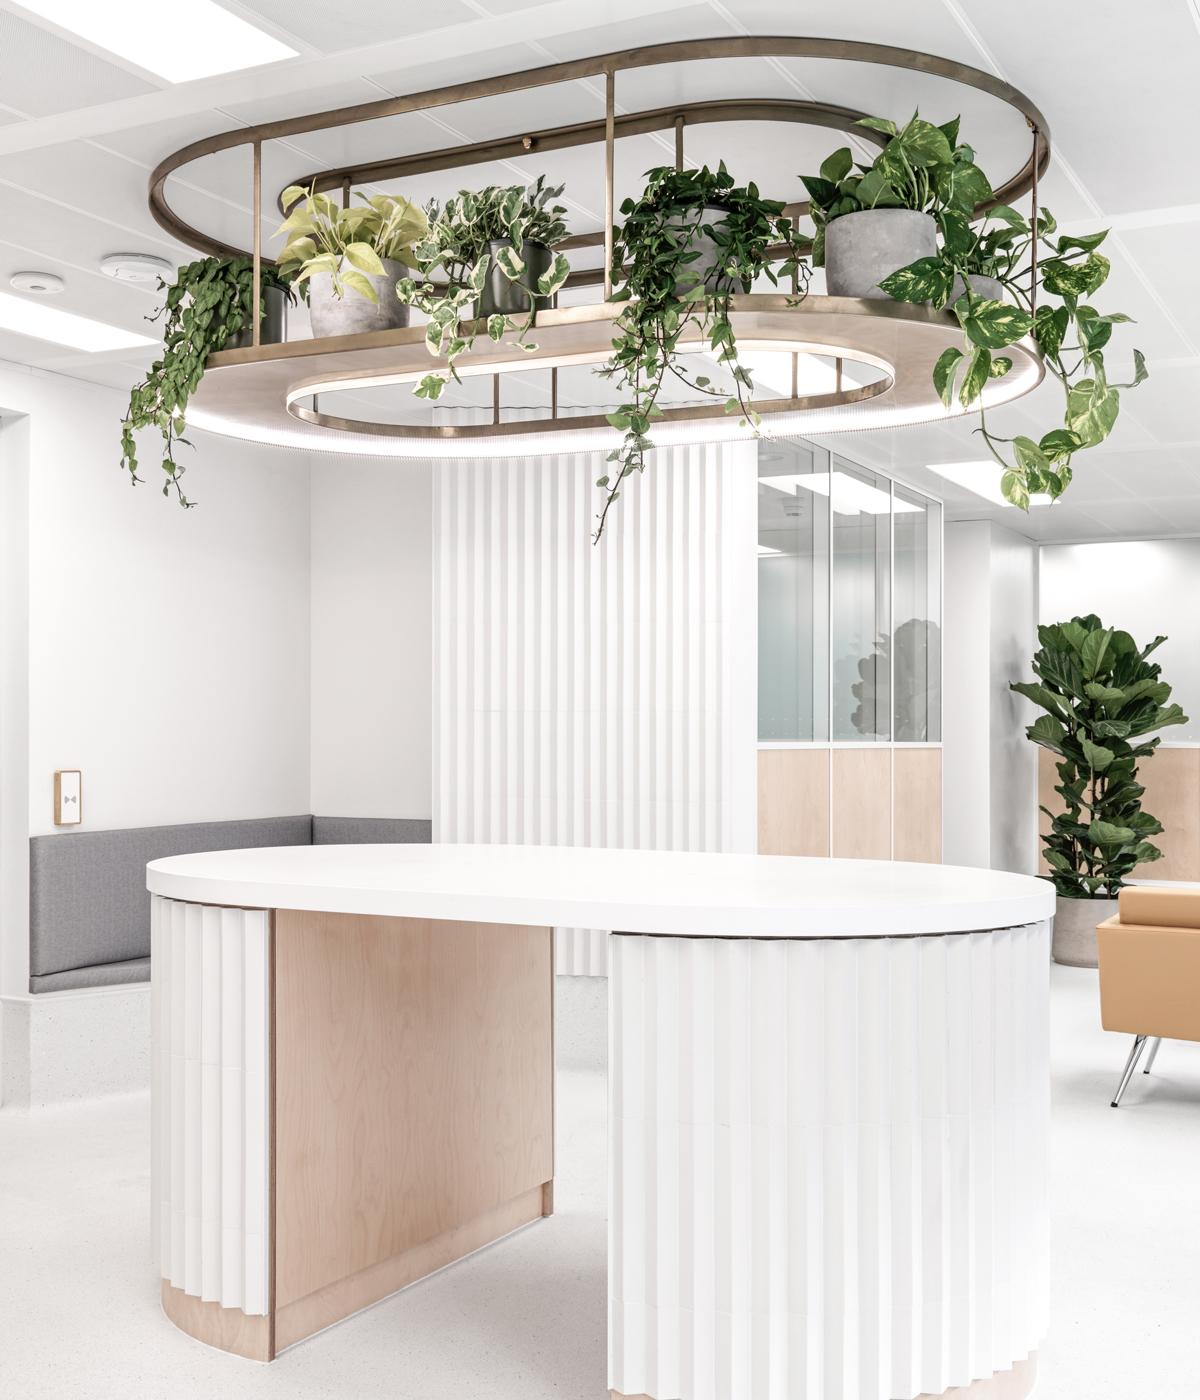 white reception desk with plants on it